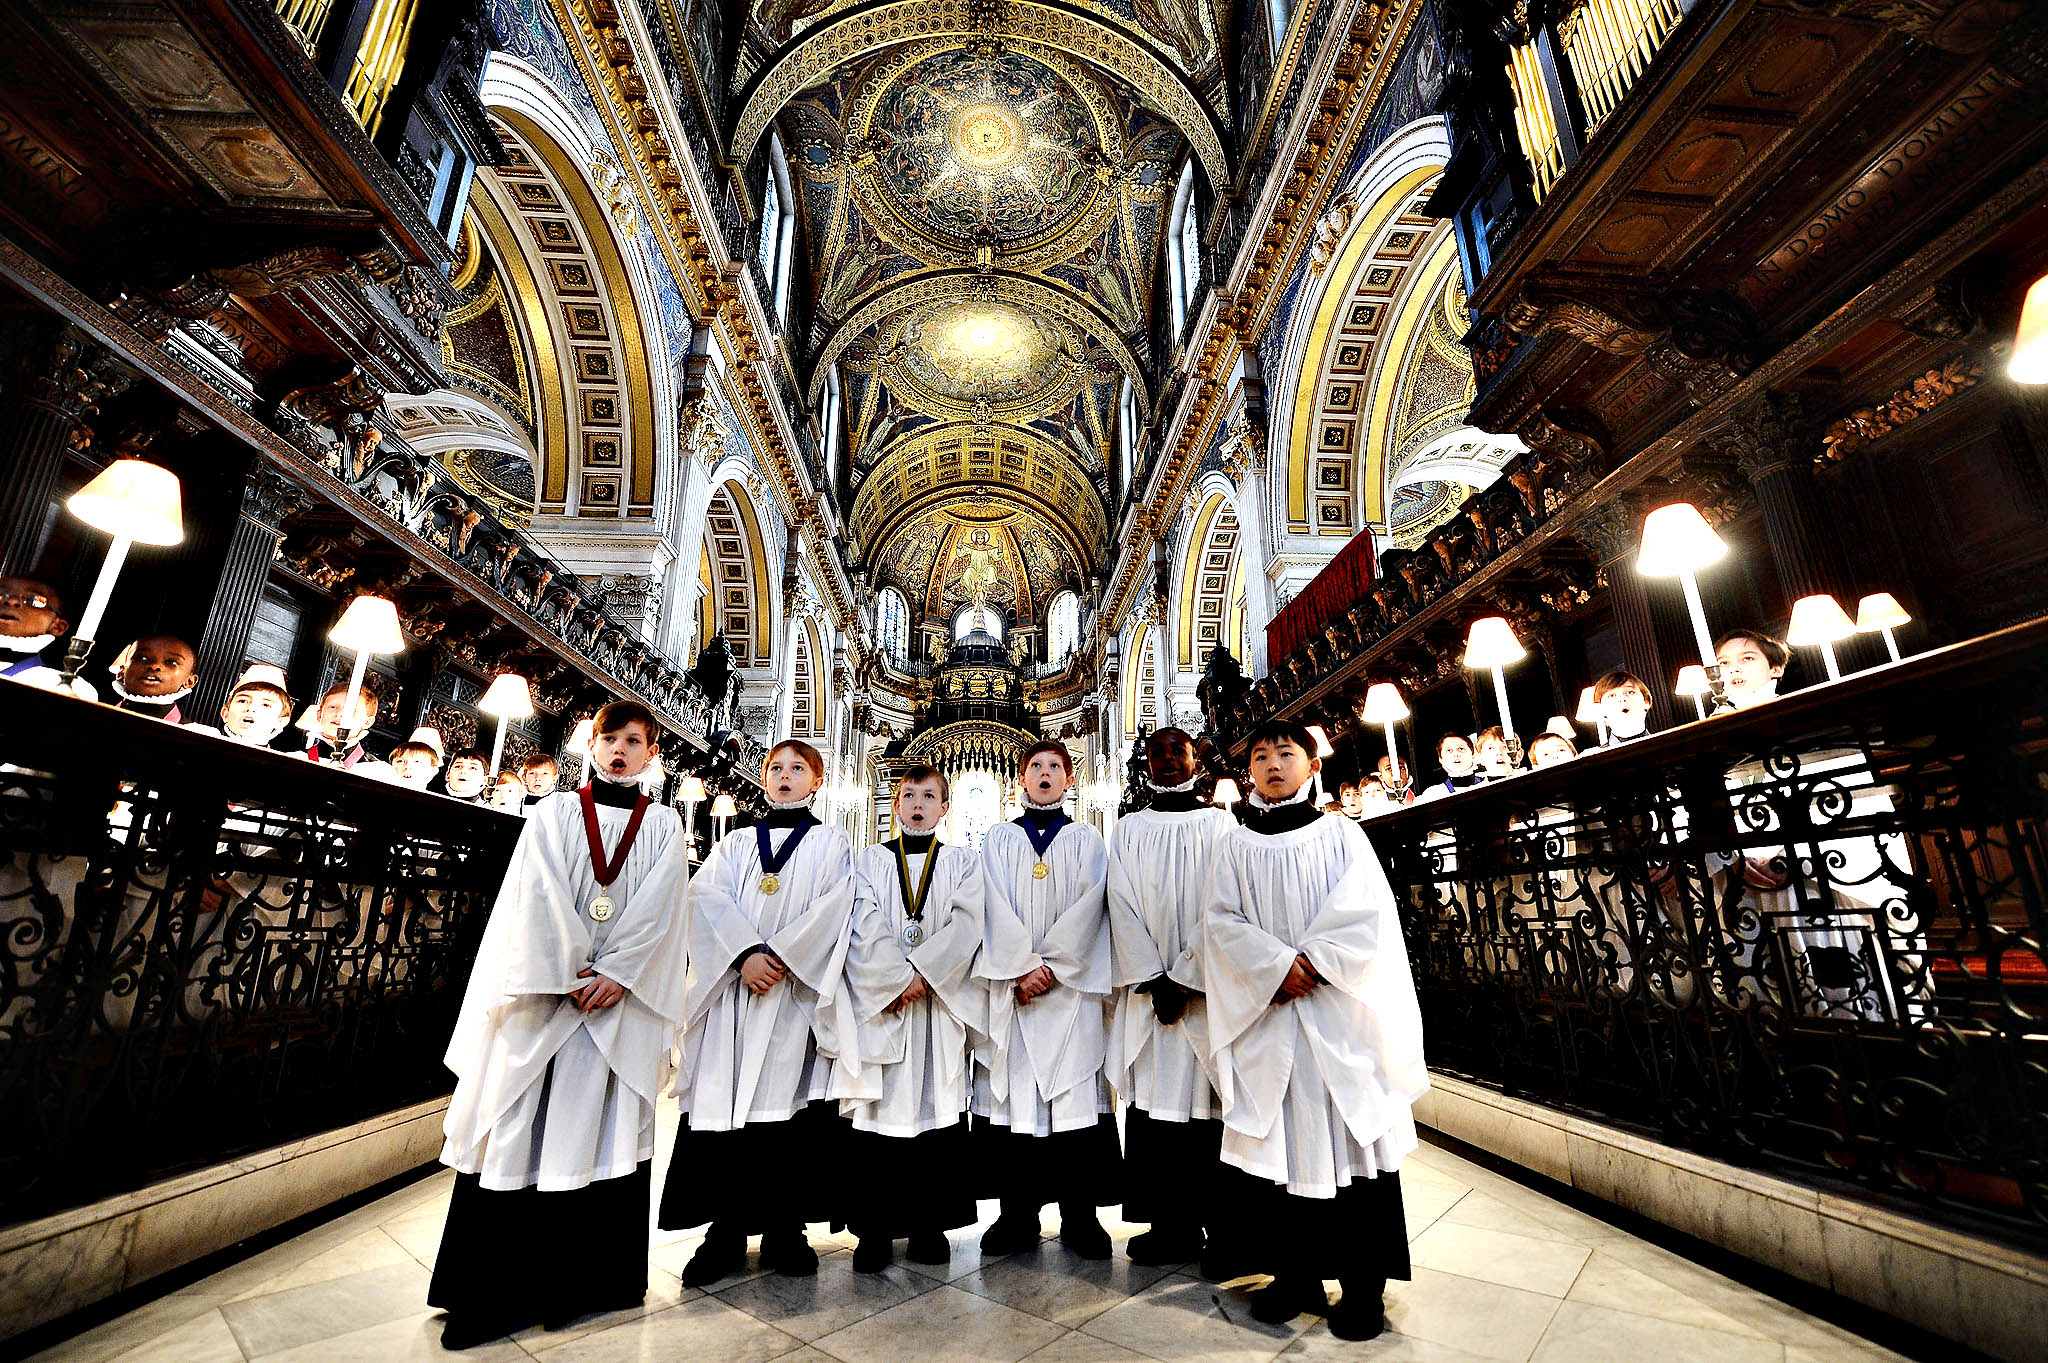 The Choristers rehearse for Advent services and concerts at St Paul's Cathedral on December 9, 2013 in London, England.  Each year nearly two million people visit St Paul's Cathedral for services and concerts in the run up to Christmas.